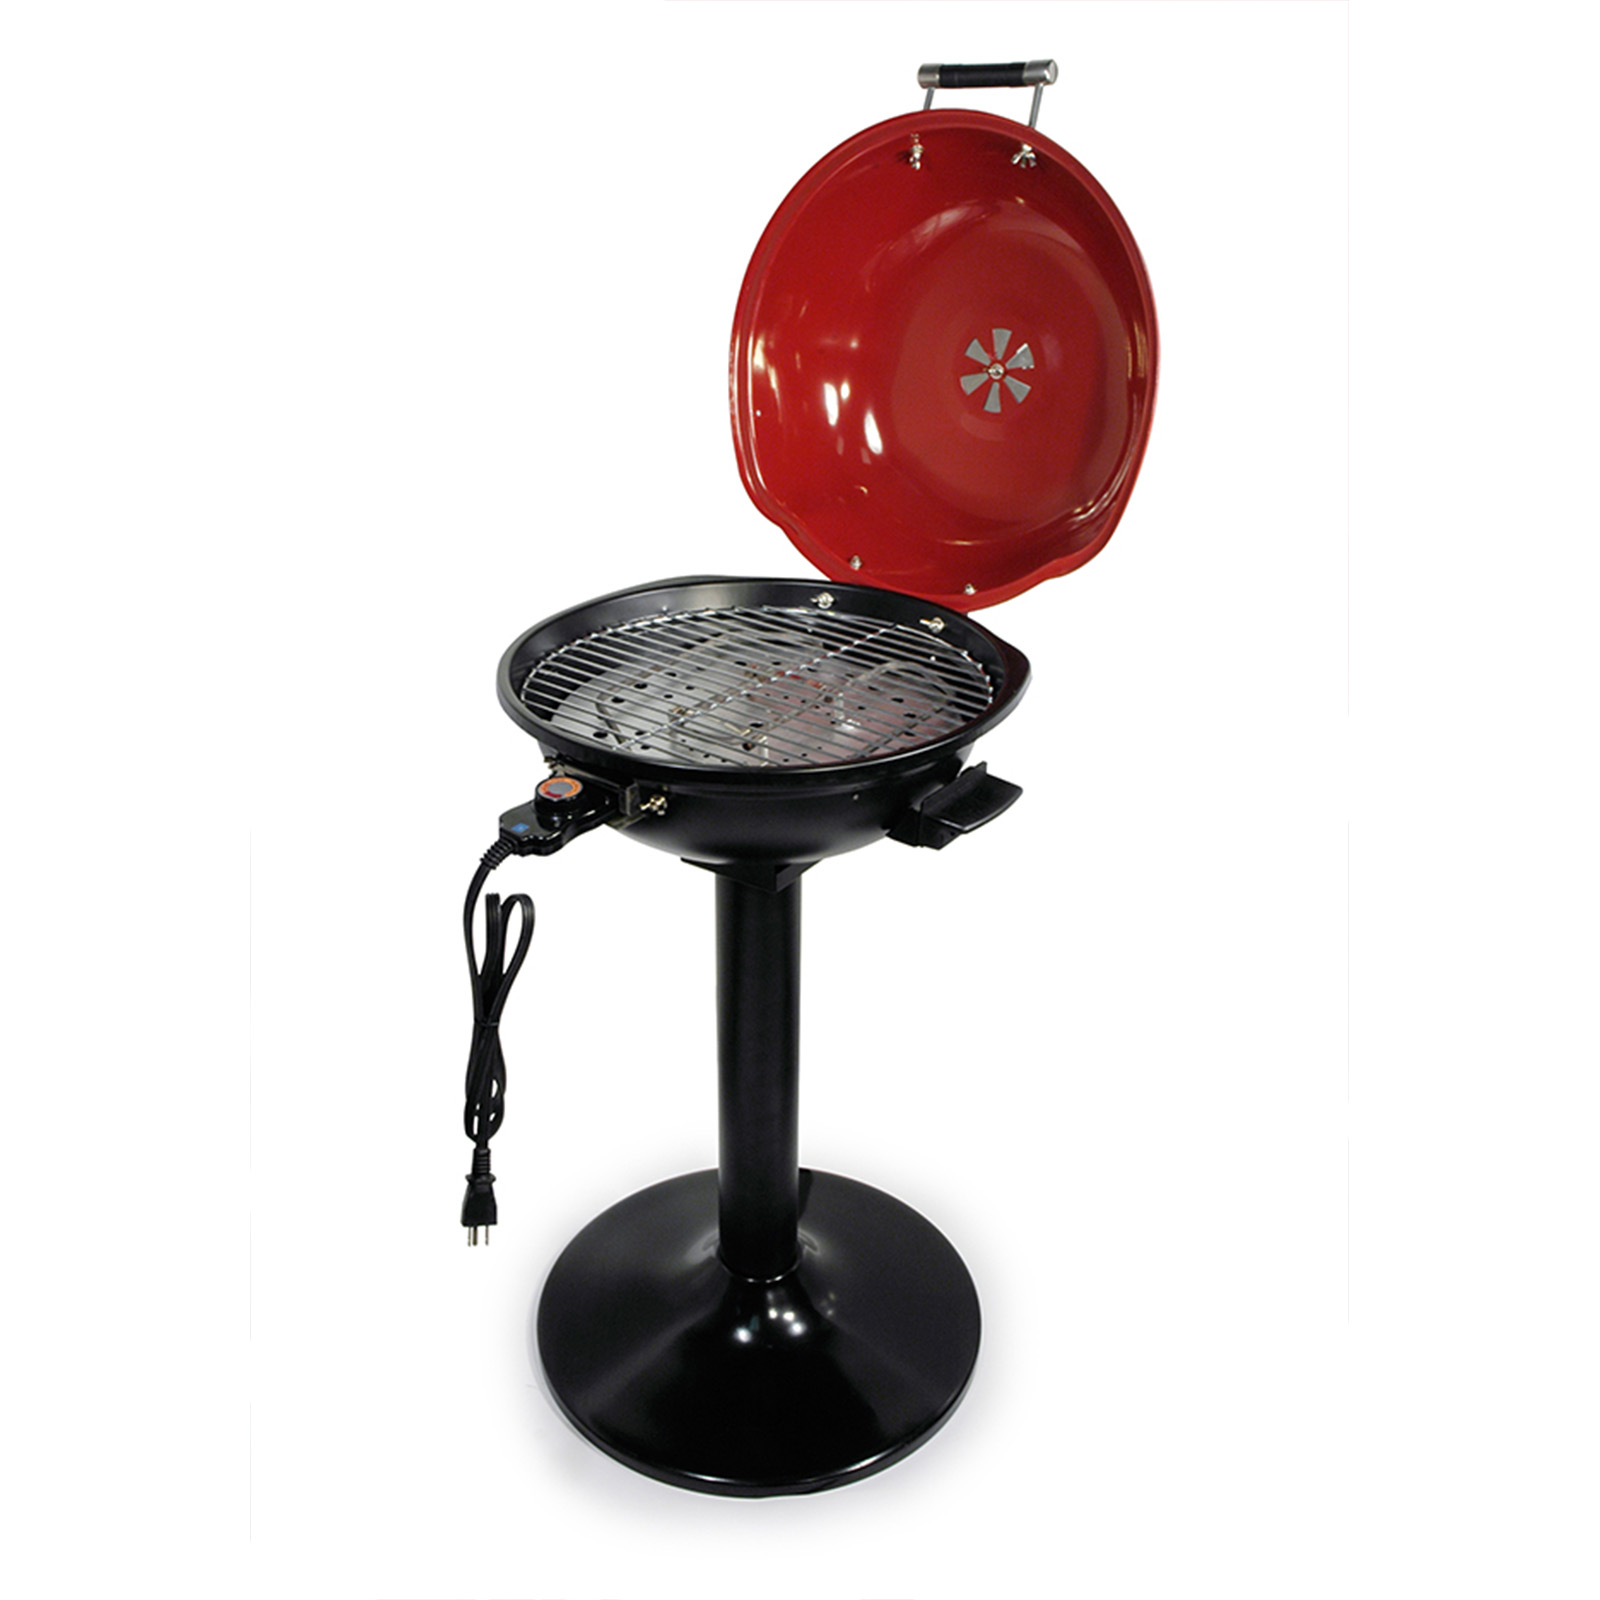 Better Chef 15-inch Electric Barbecue Grill